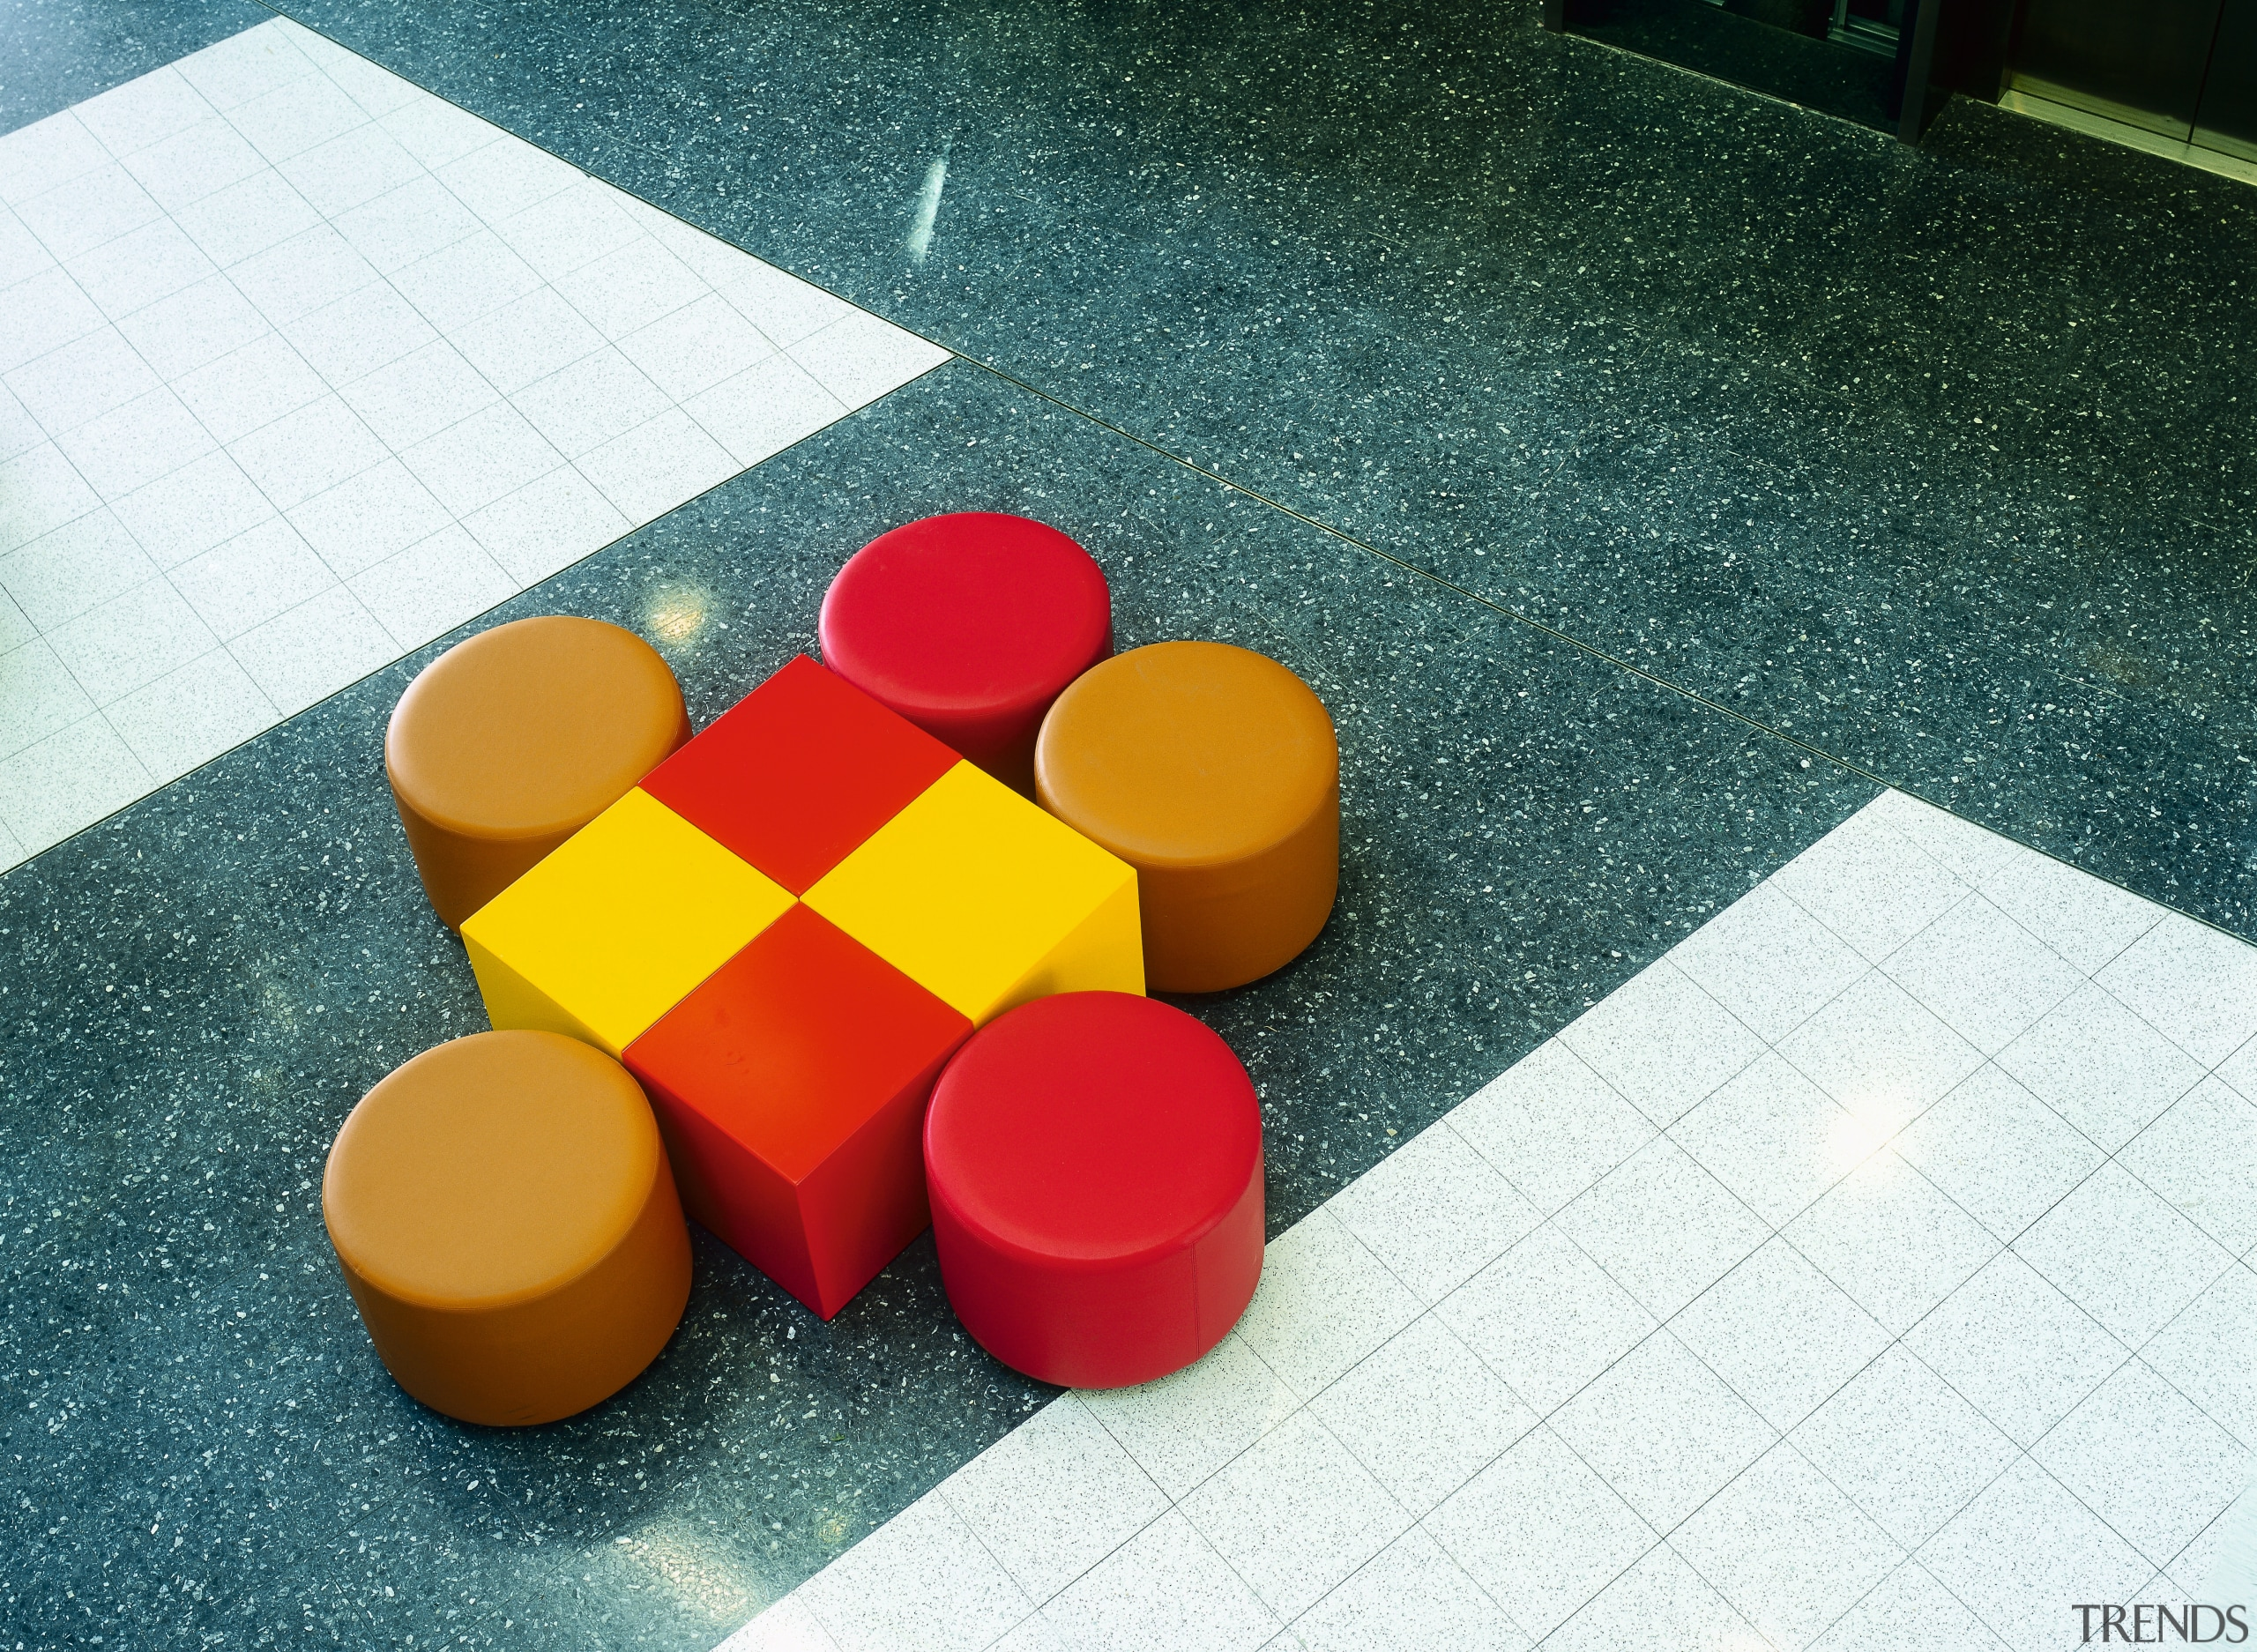 view of the terazzo tiles - view of design, floor, flooring, material, plastic, play, product design, red, table, yellow, teal, white